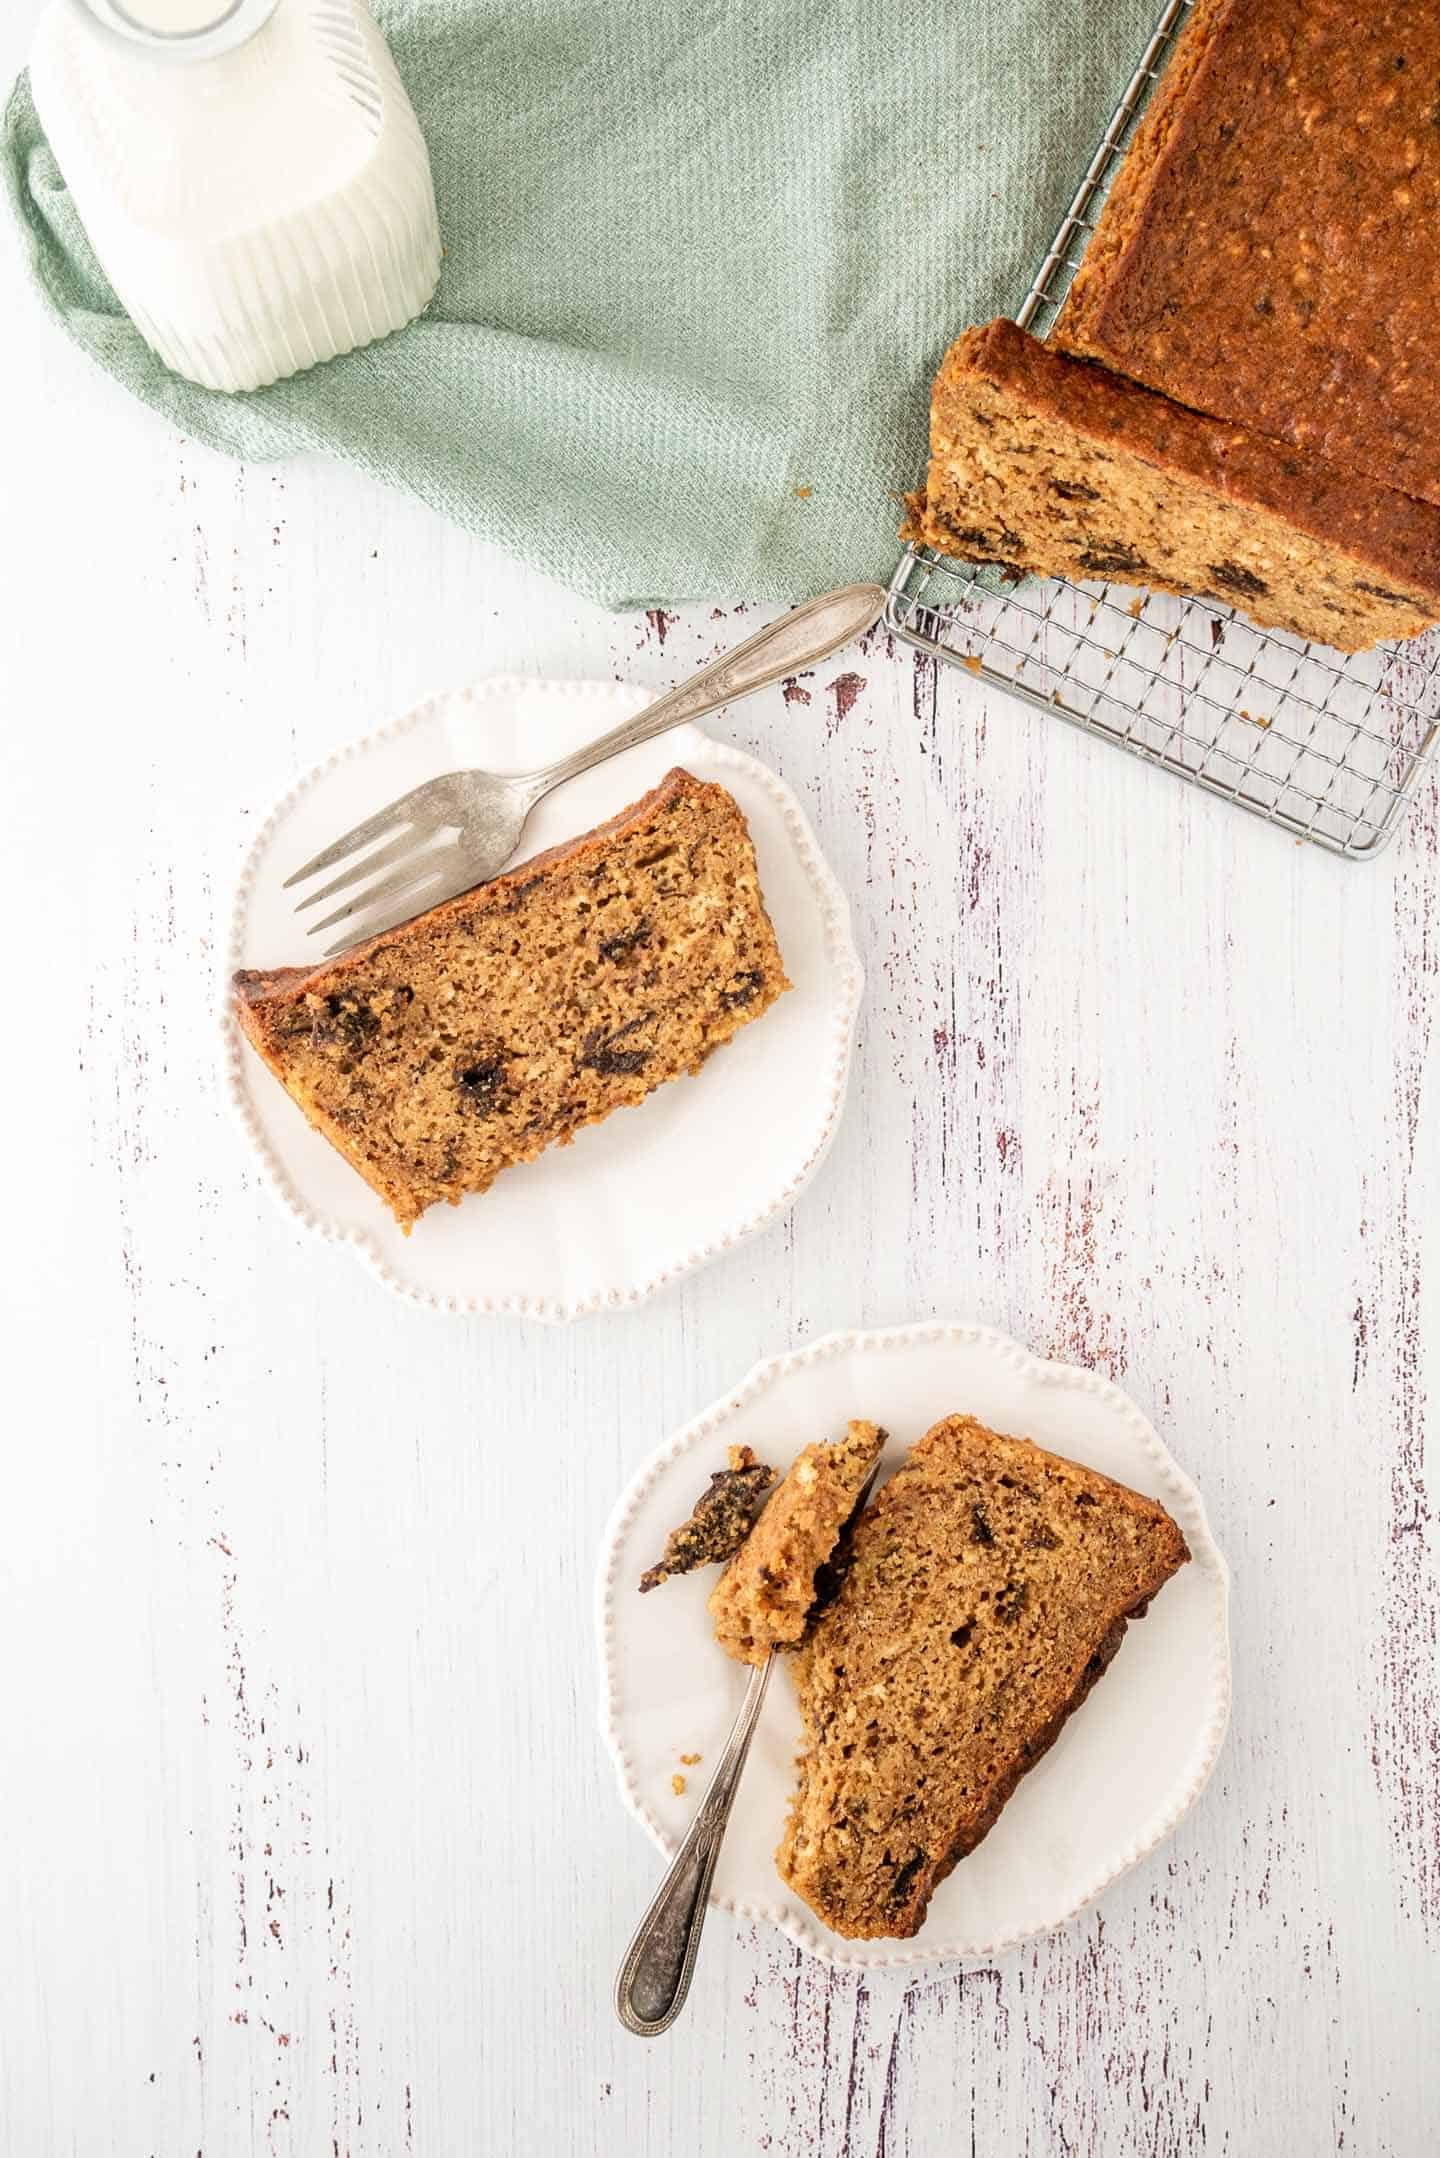 Two slices of cake on white plates, with the whole prune lof cake on a cooling rack in one corner and a green tea towel on the other